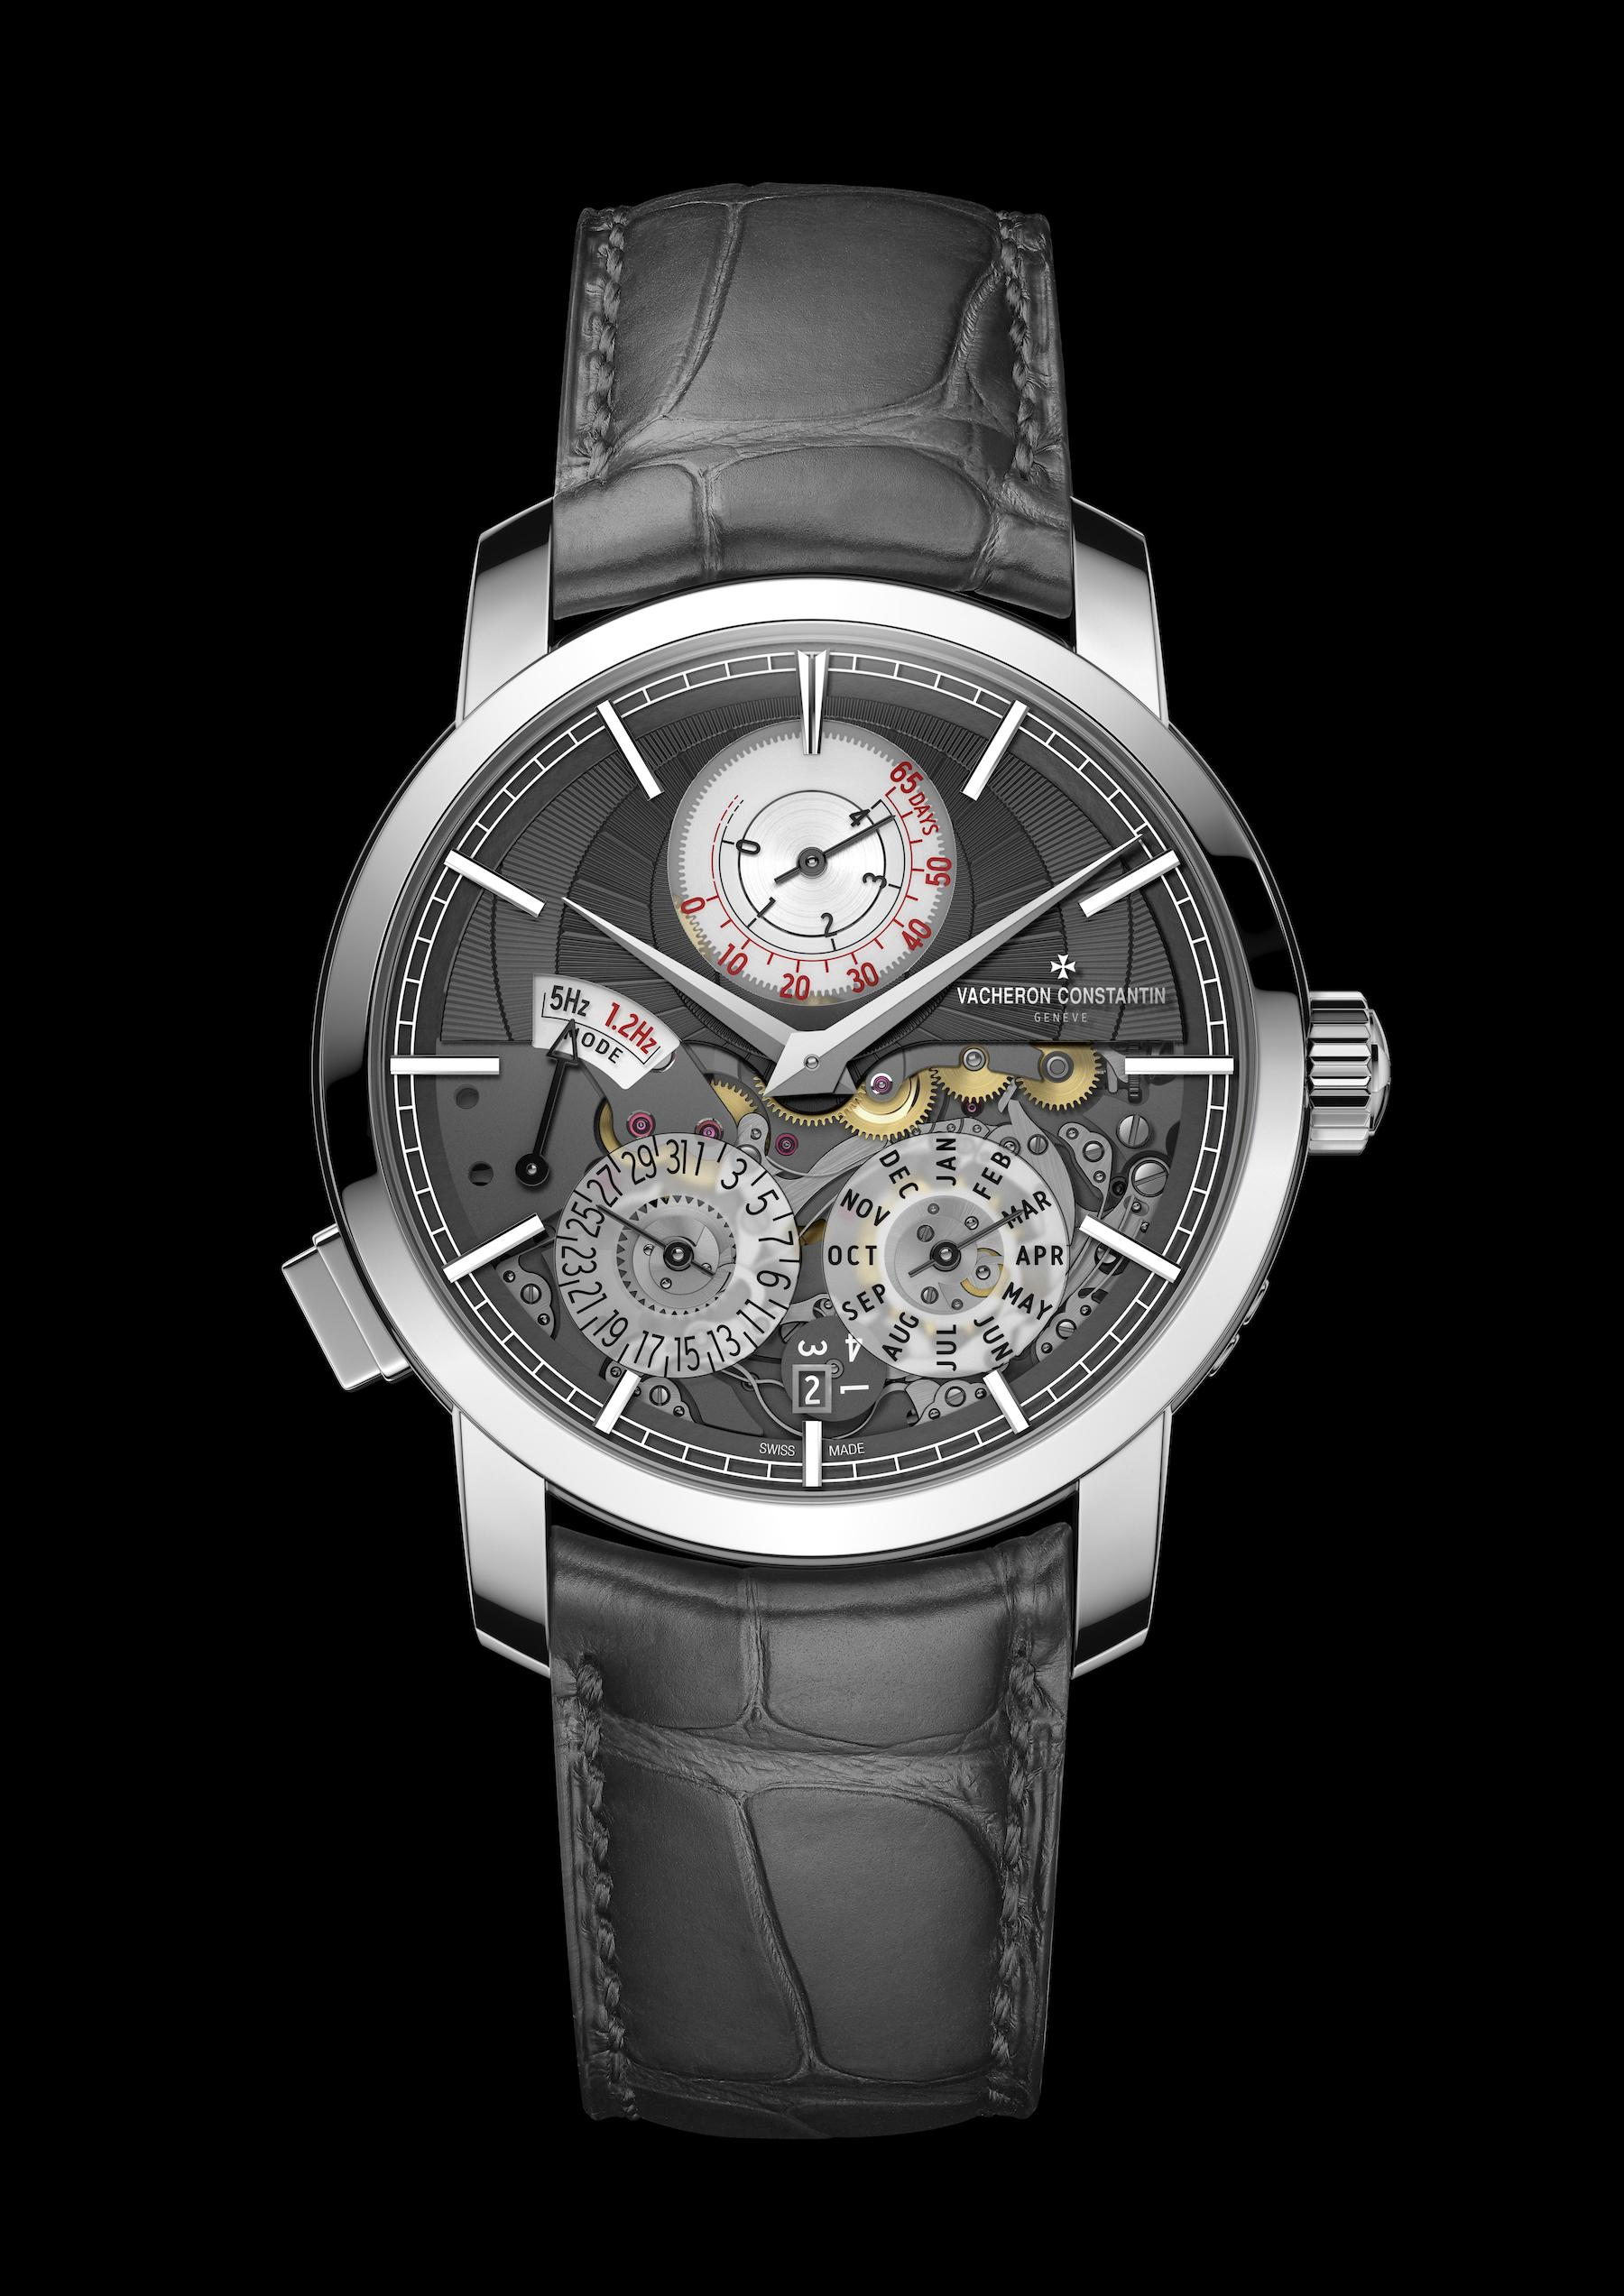 Vacheron Constantin Traditionnelle Twin Beat (R) Perpetual Calendar watch